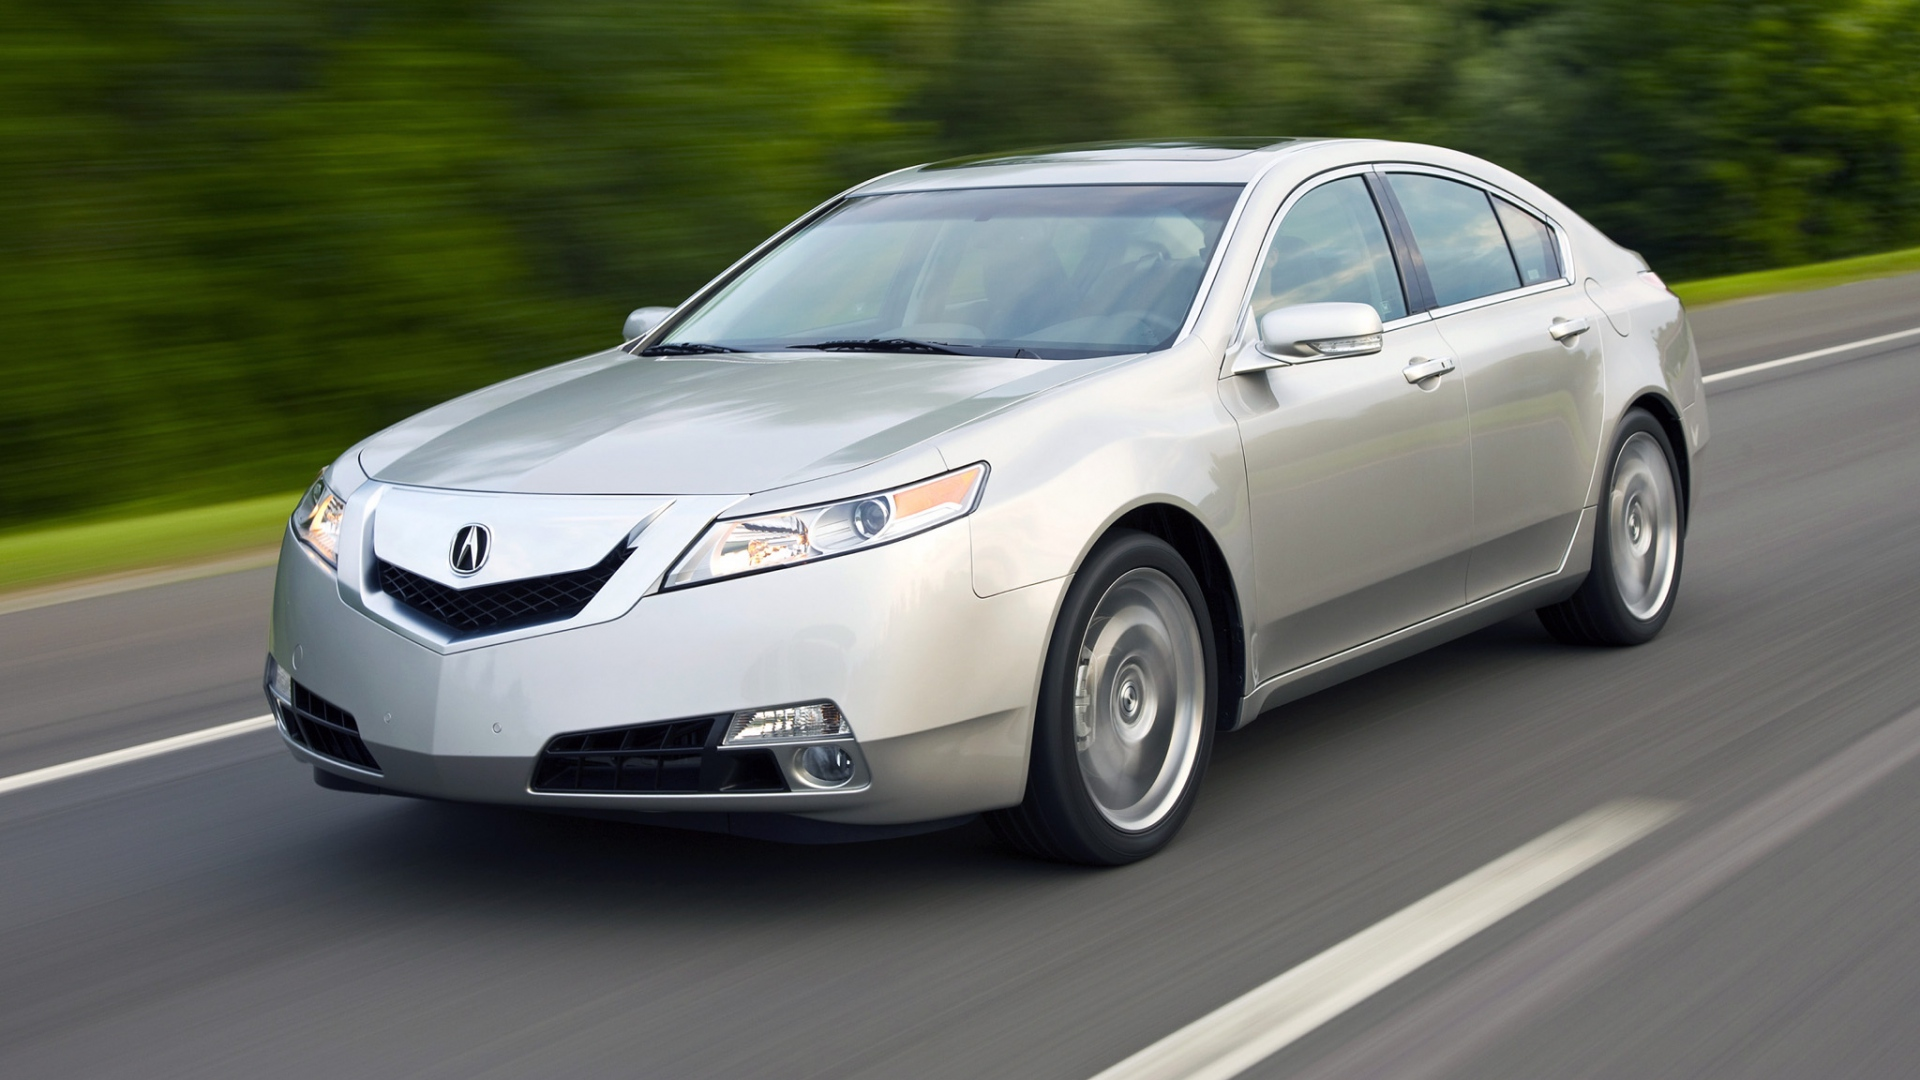 1920x1080-acura-tl-silver-metallic-side-view-style-cars-speed-trees-highway-wallpaper-wpc900967